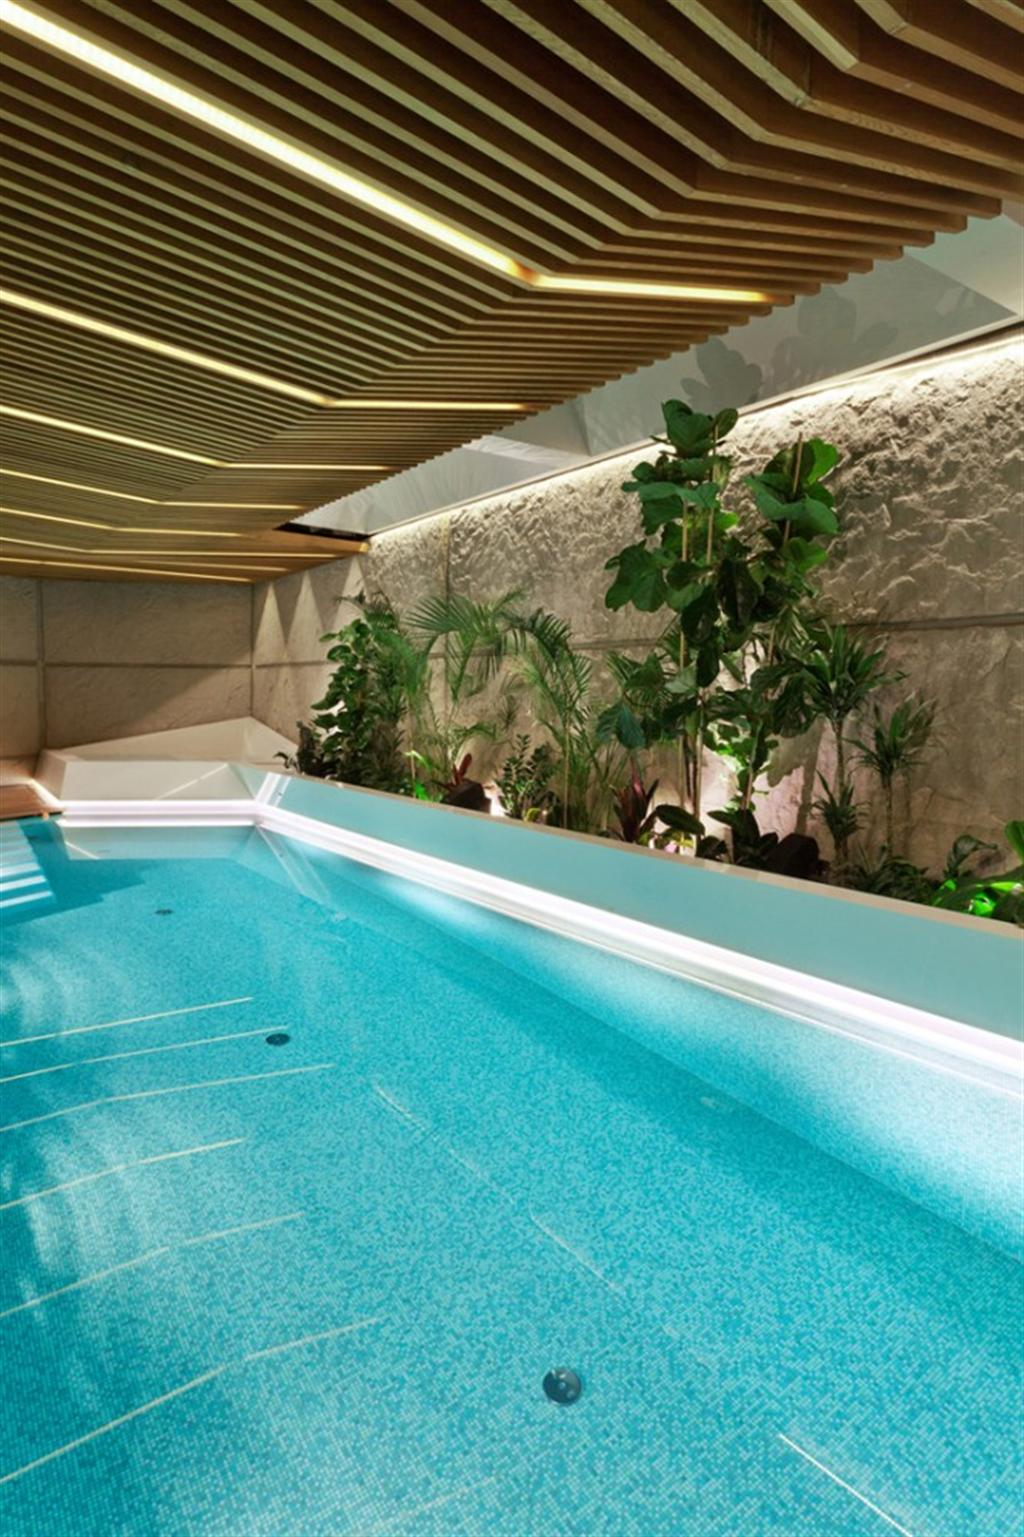 Chill-out and absolute Relaxation: The Spa Home 10